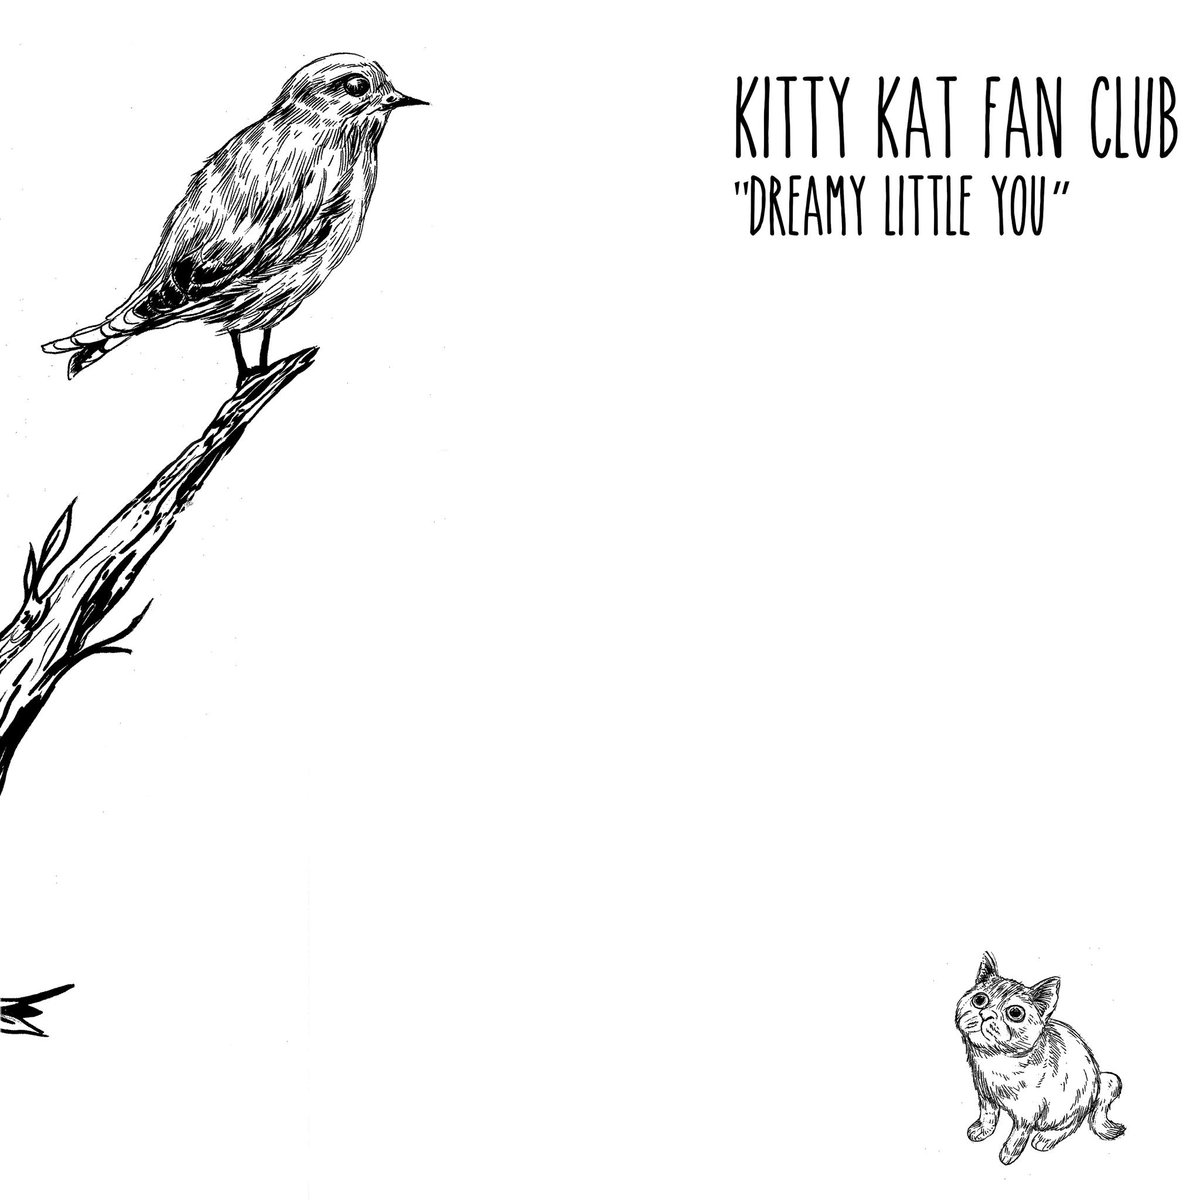 kitty kat fan club.jpg